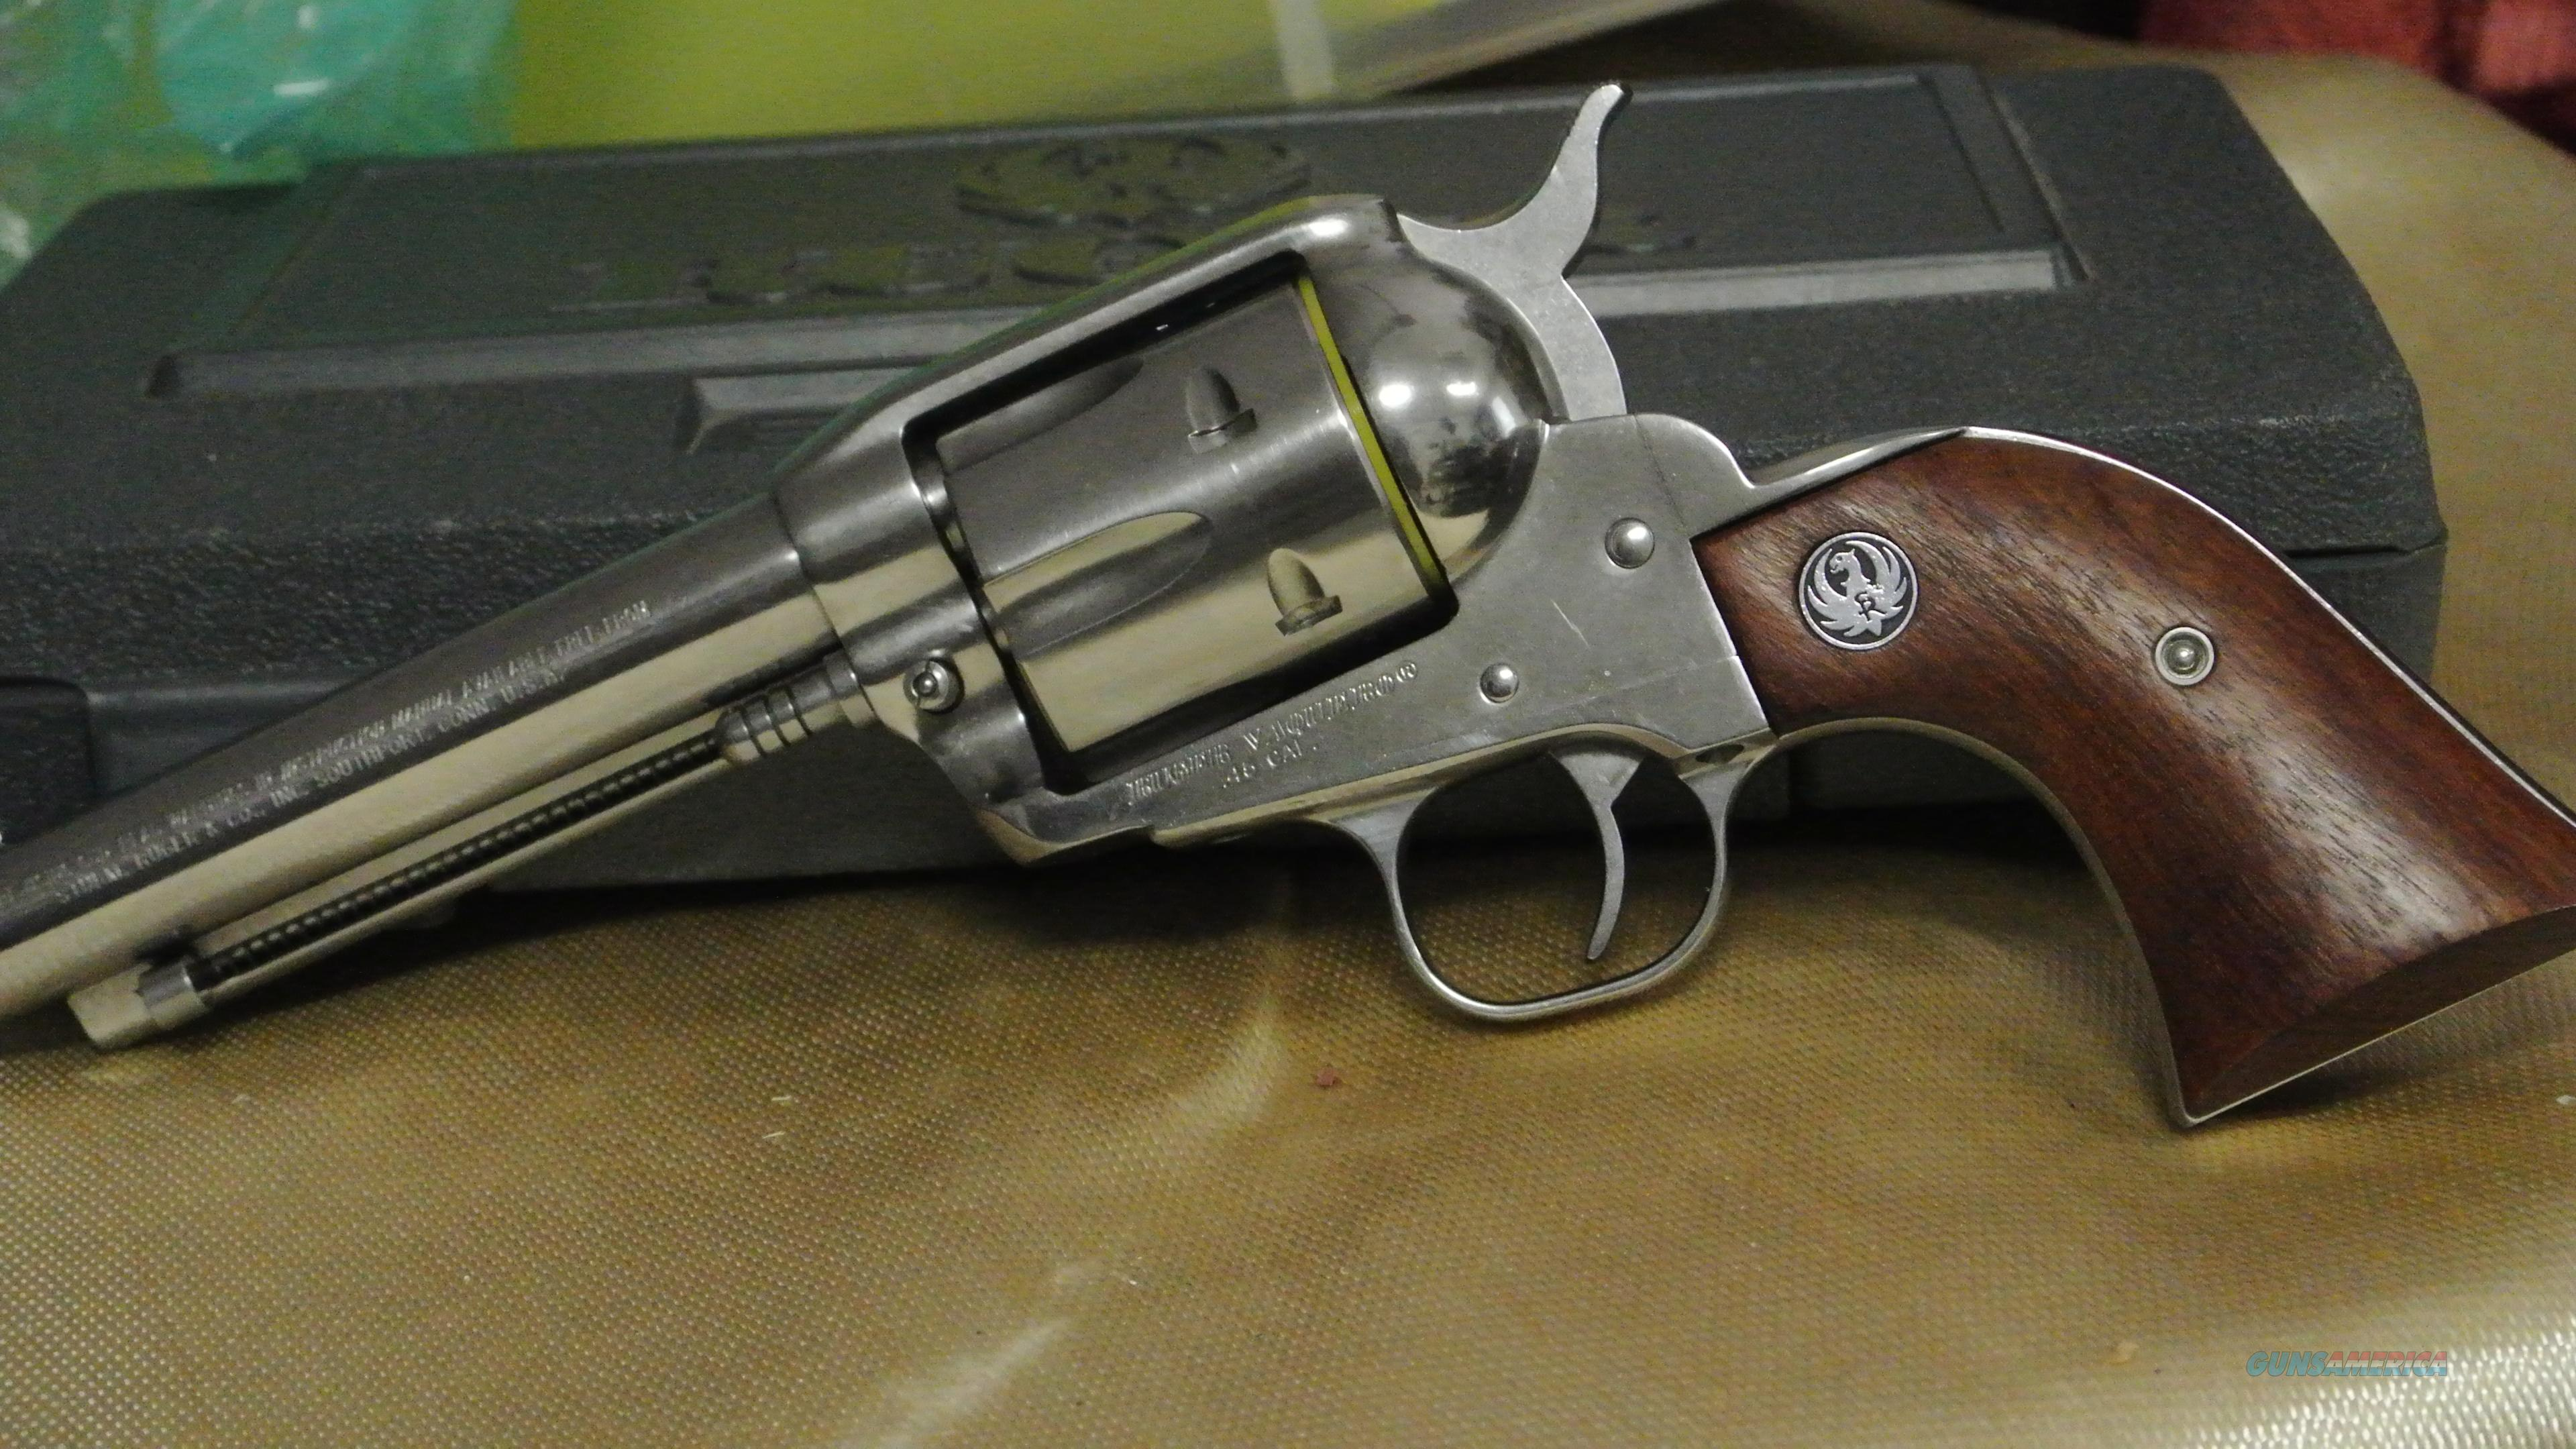 Old Model Ruger Vaquero, Stainless with a 5 1/2 inch barrel  Guns > Pistols > Ruger Single Action Revolvers > Cowboy Action